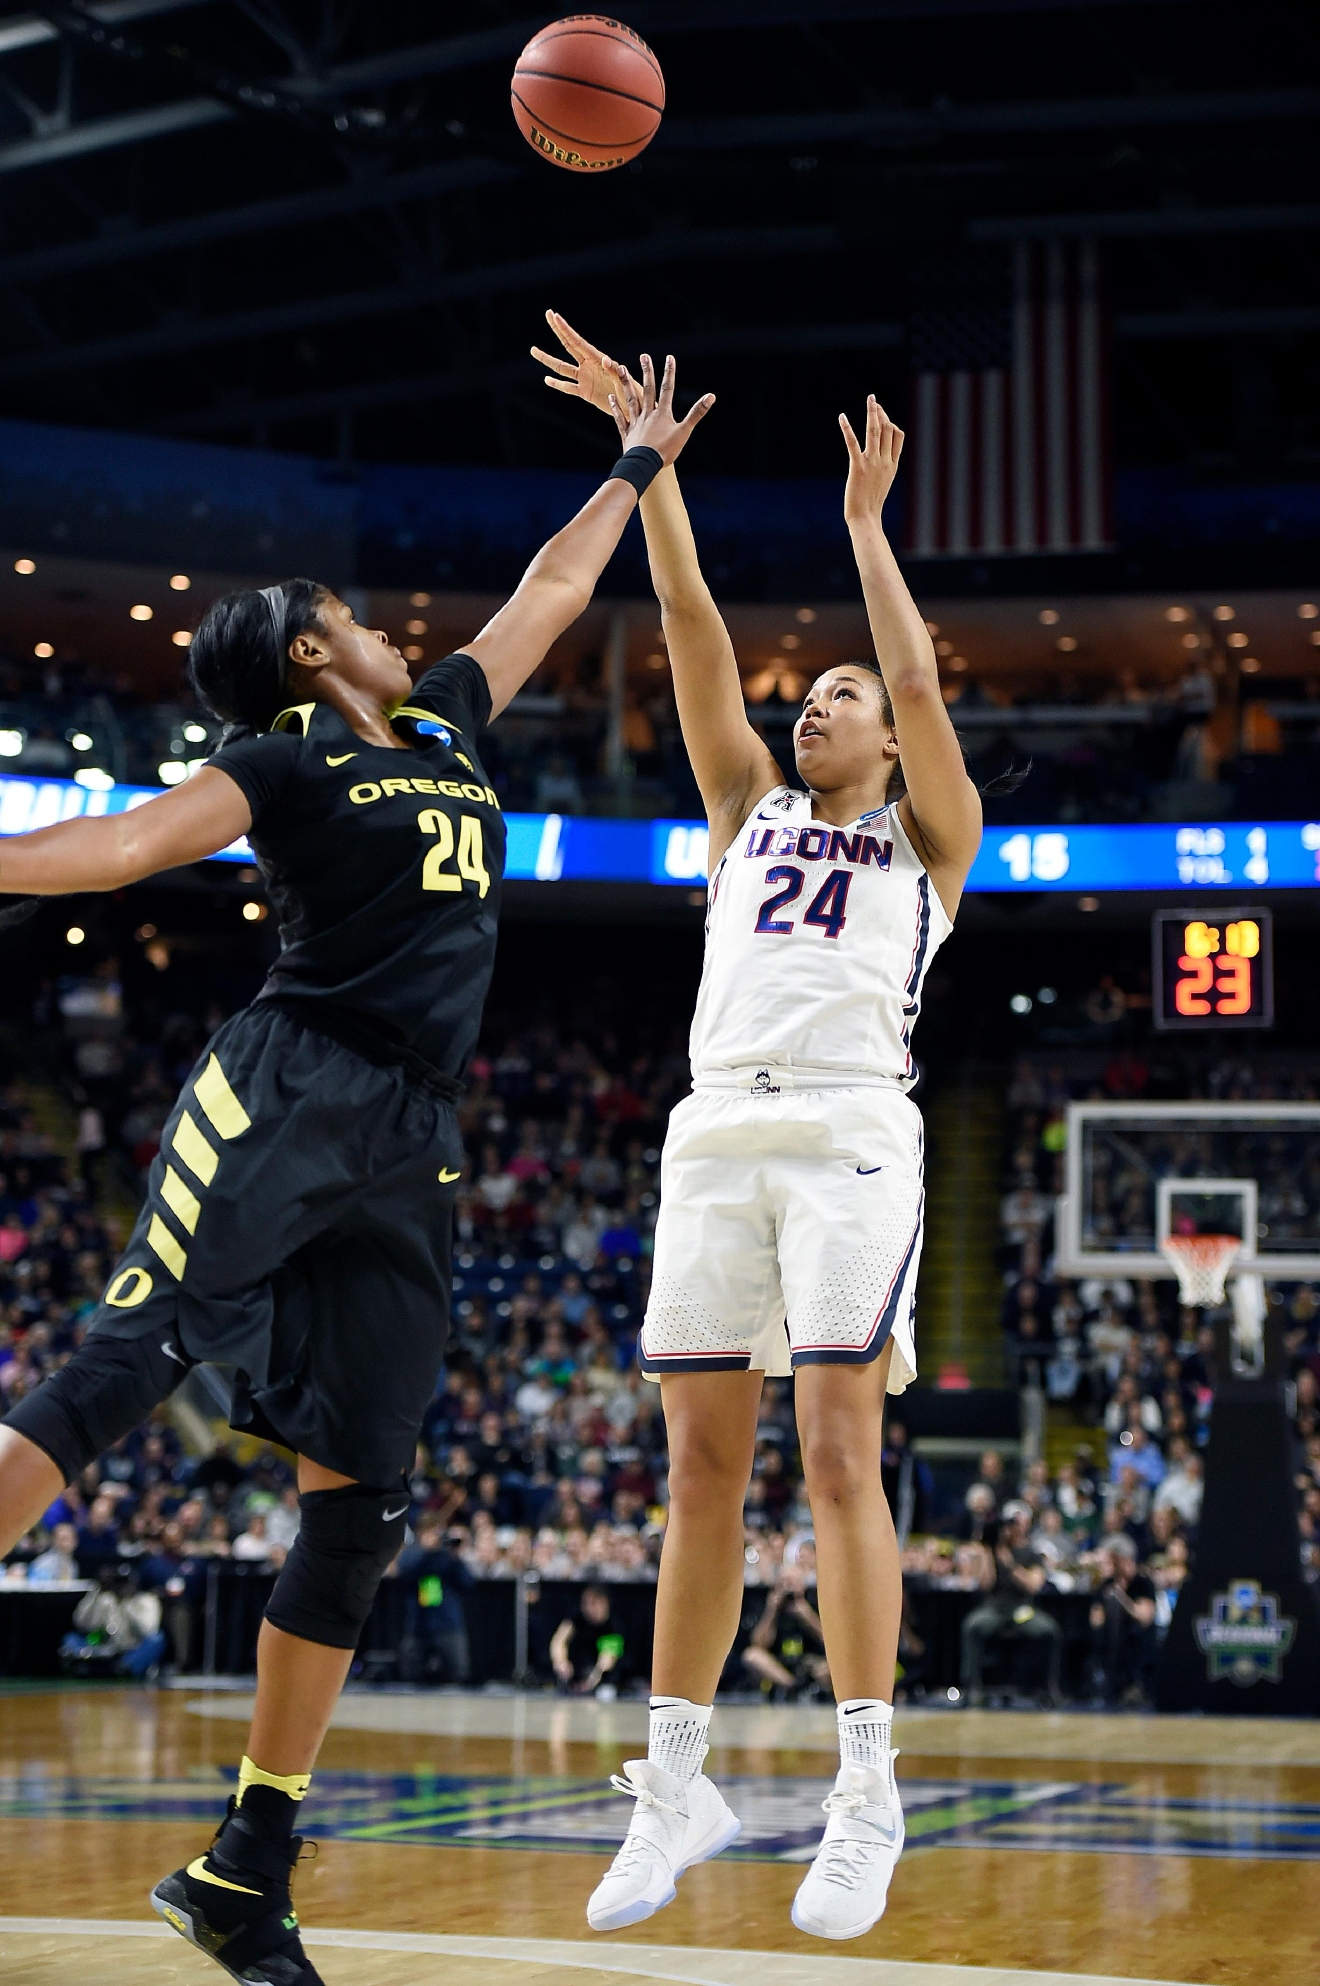 Connecticut's Napheesa Collier, right, shoots over Oregon's Ruthy Hebard during the first half of a regional final game in the NCAA women's college basketball tournament, Monday, March 27, 2017, in Bridgeport, Conn. (AP Photo/Jessica Hill)